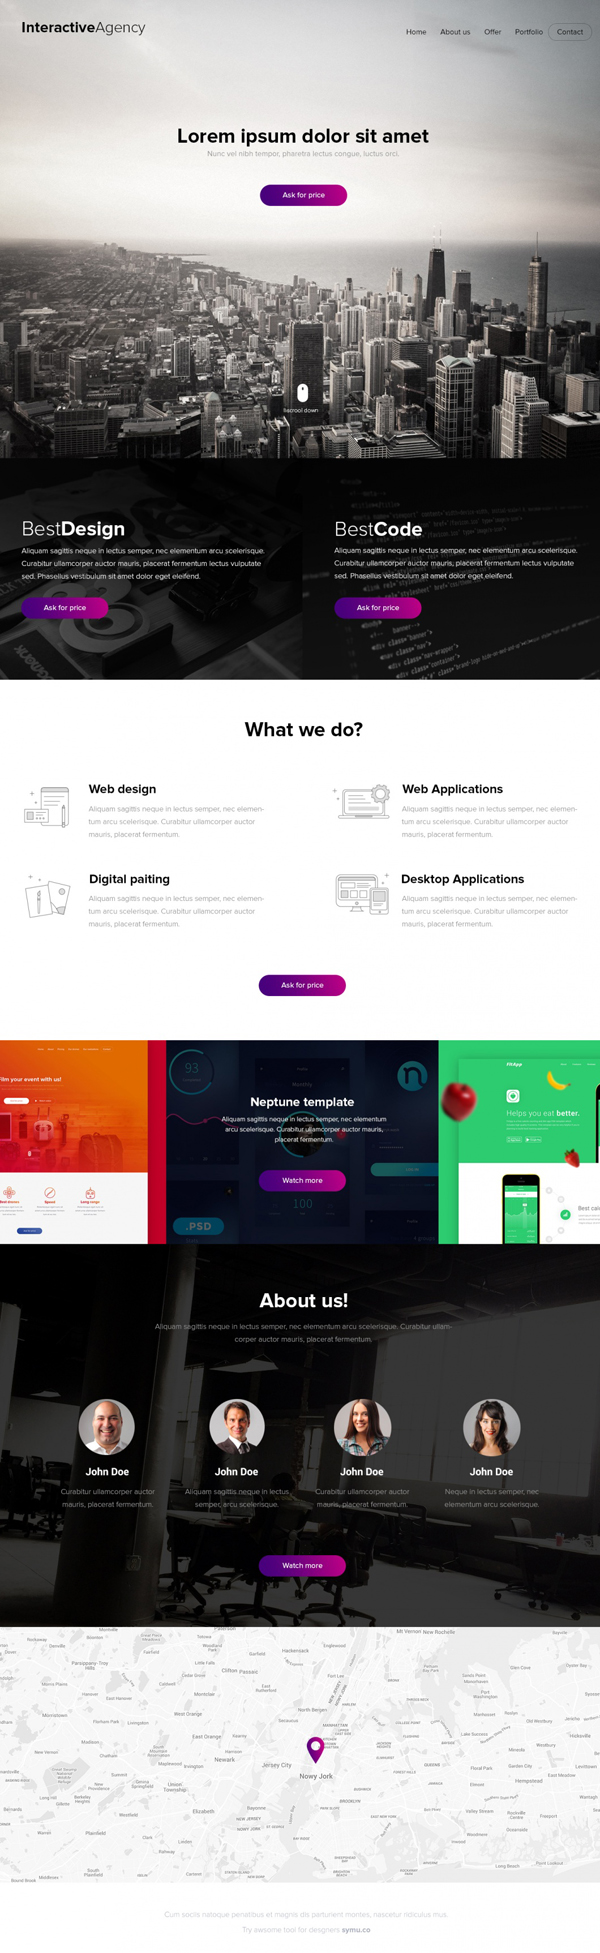 12 New Free PSD Website Templates | Freebies | Graphic Design Junction